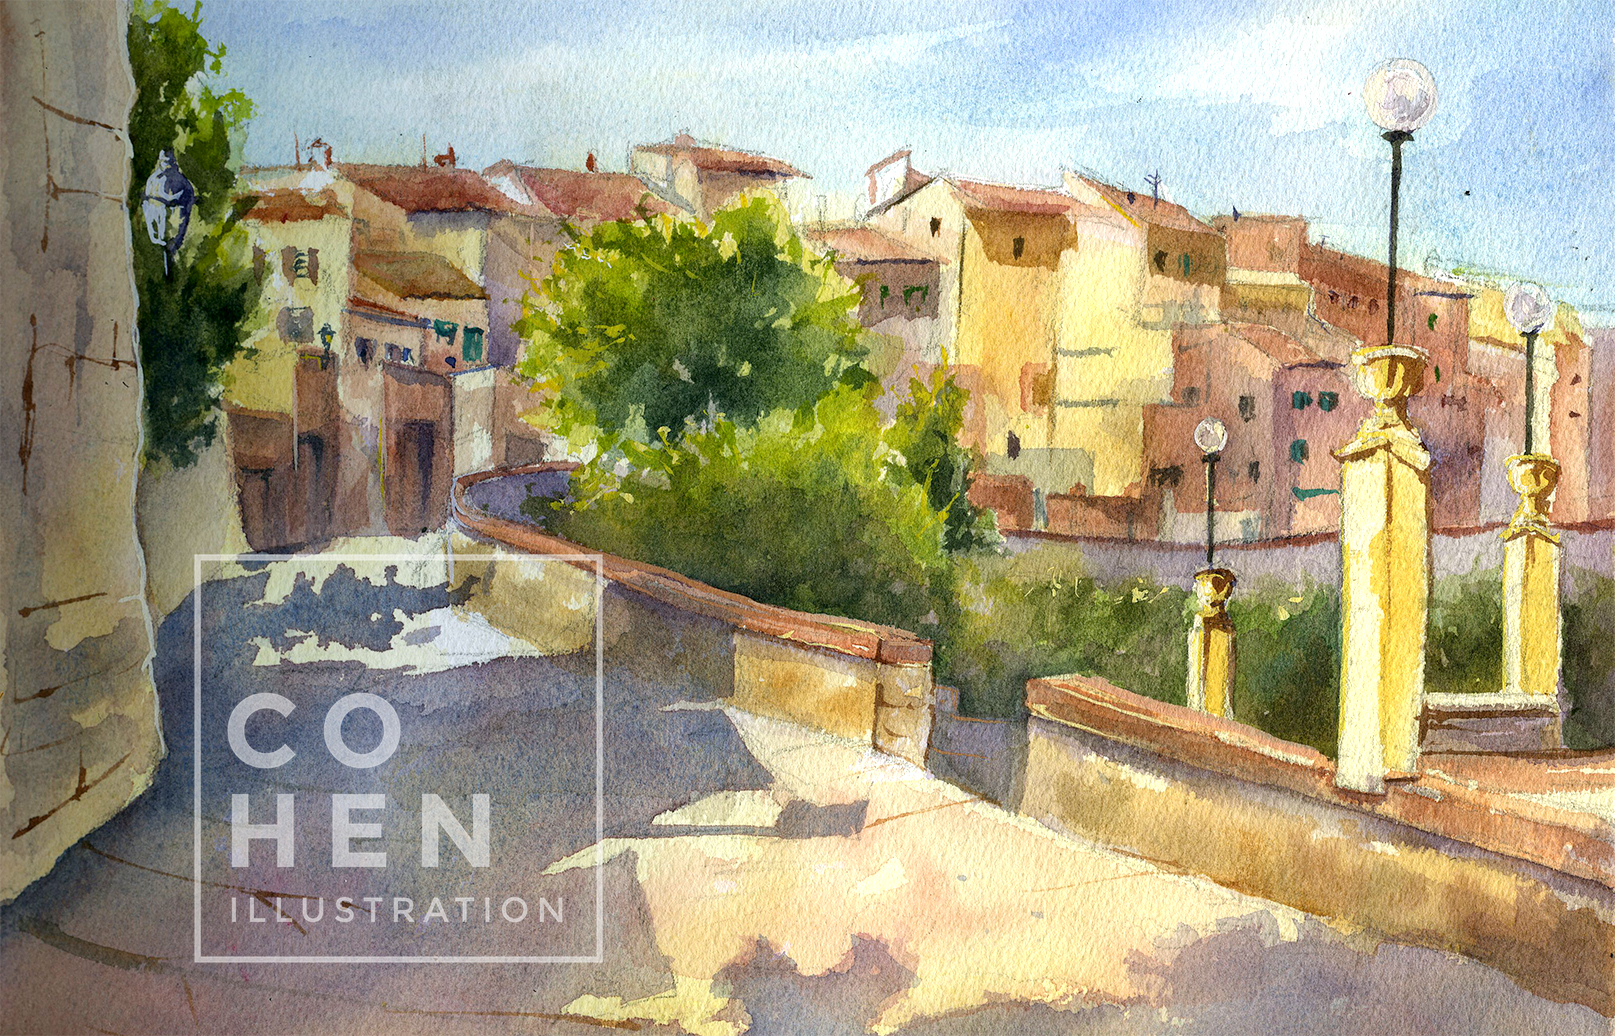 cohenillustration-tuscany-watercolor